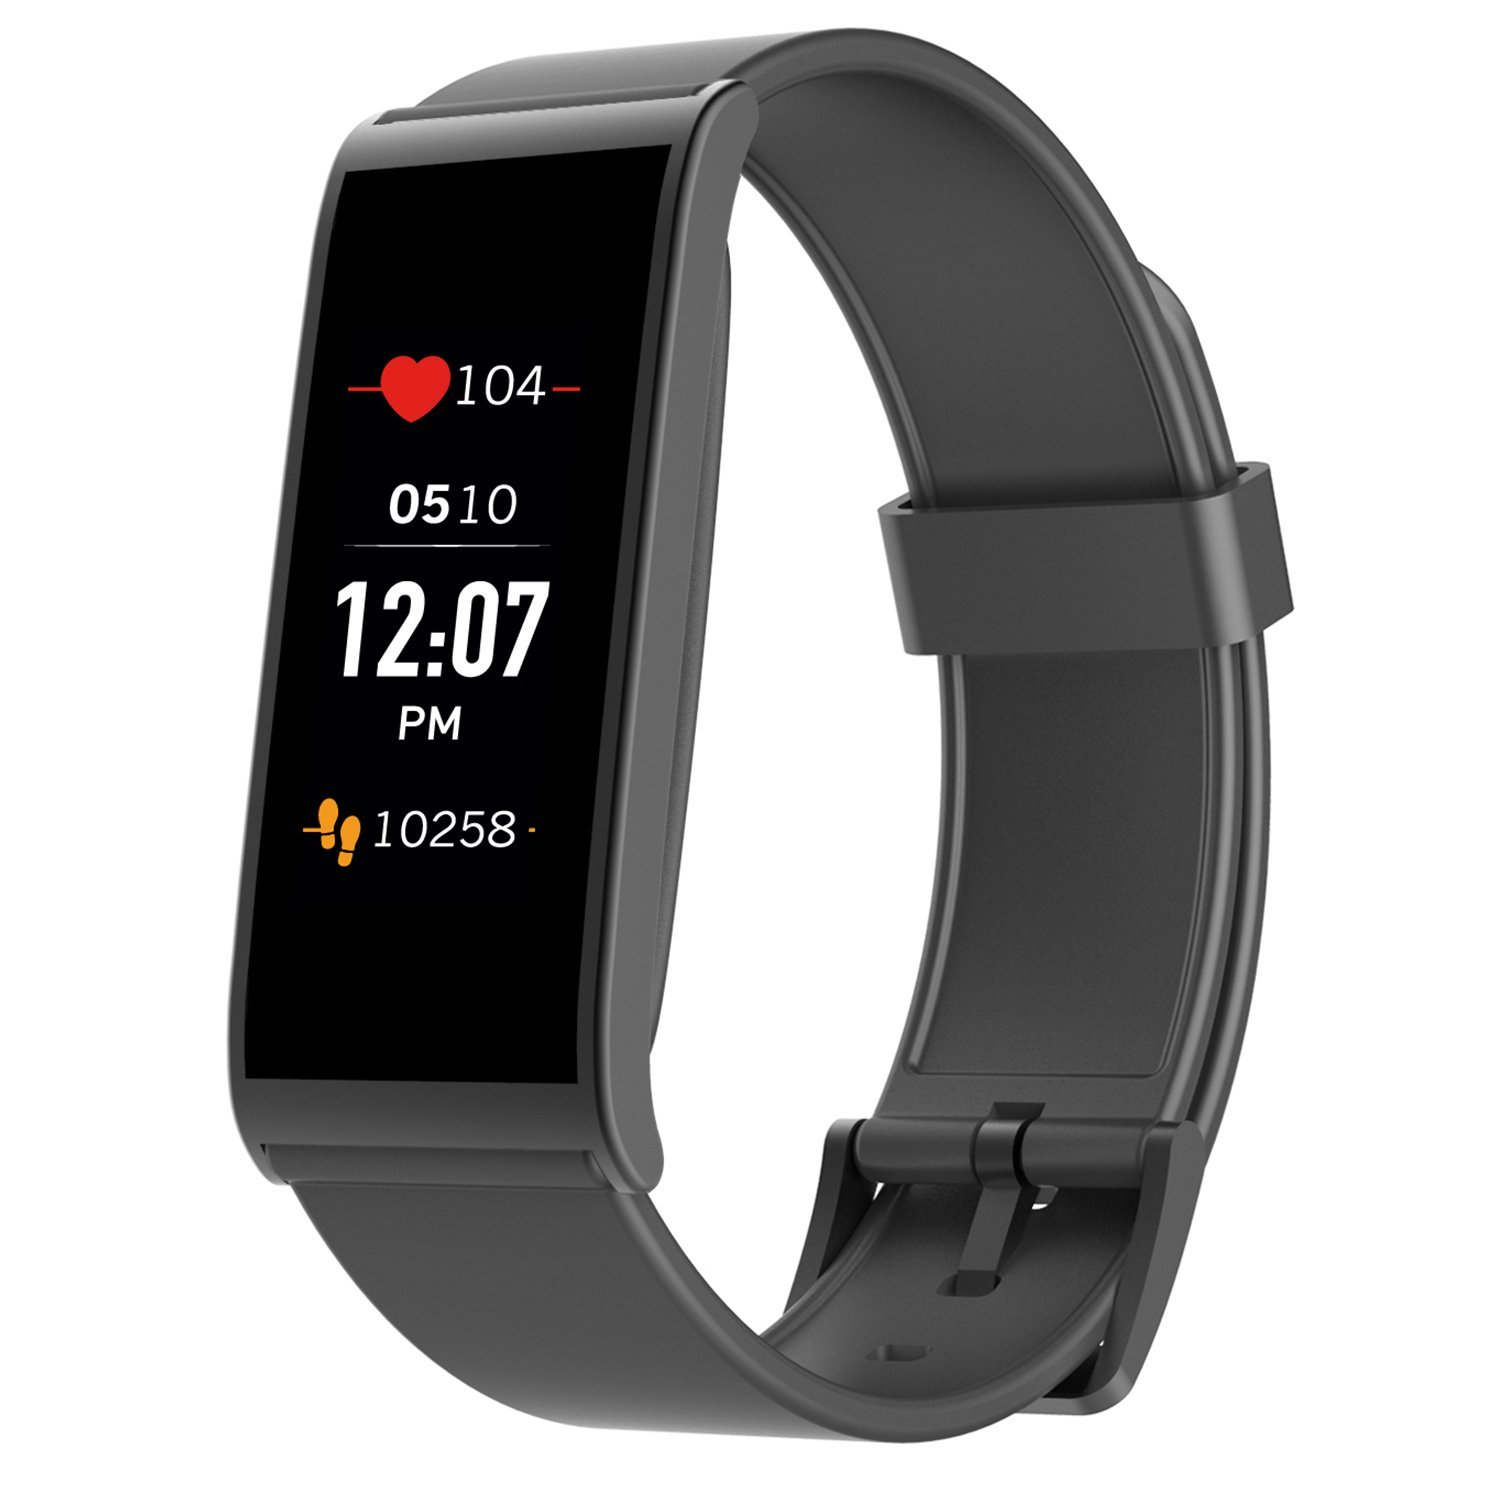 MyKronoz ZeFit4 HR Fitness Activity Tracker with Heart Rate Monitoring, Color Touchscreen & Smart Notifications - Black/Black - NEW Never Opened Box - Certified Renewed by MYKRONOZ (Image #1)